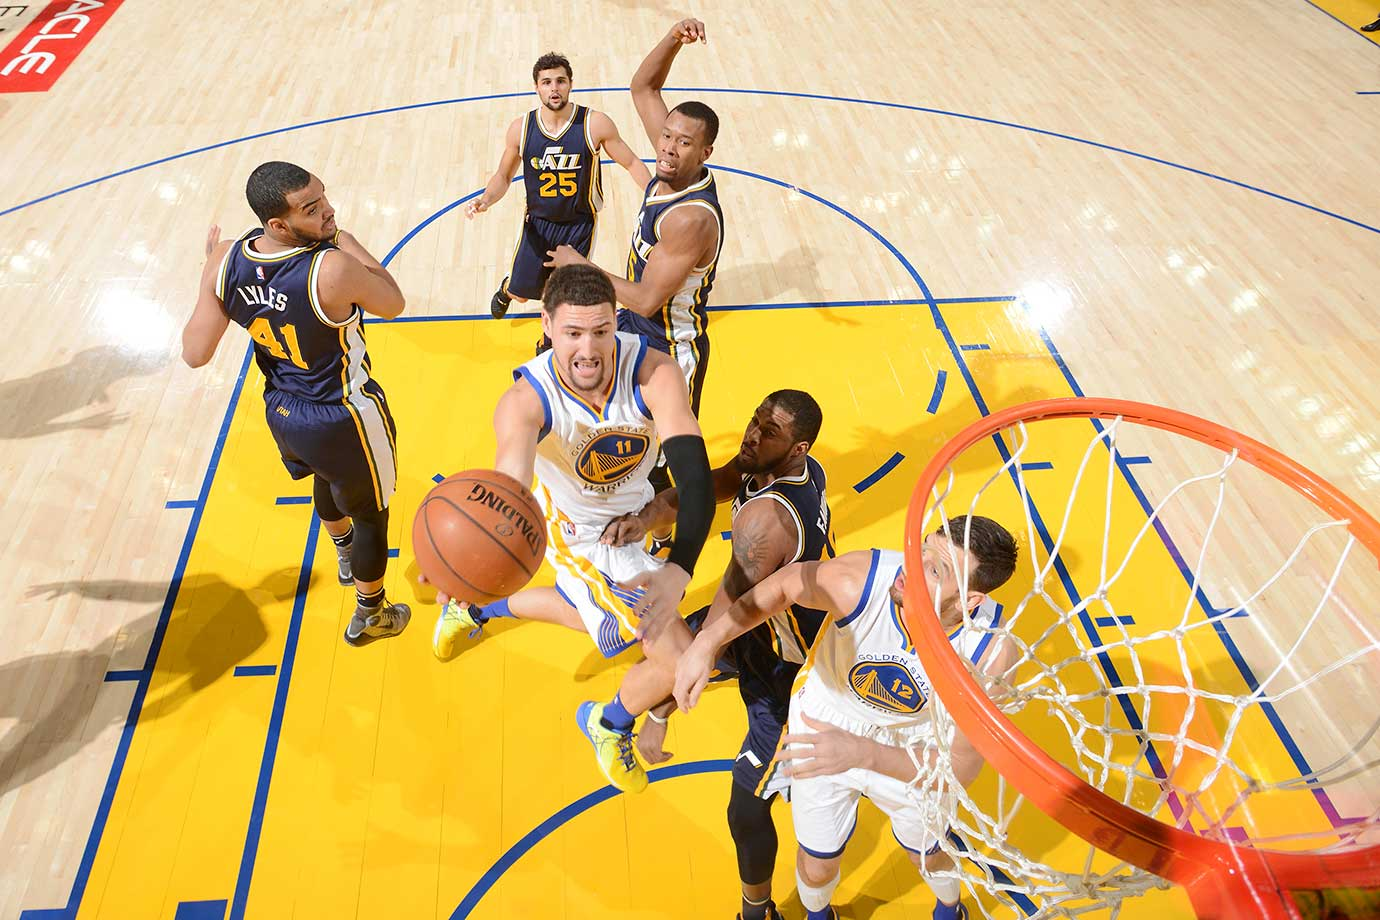 Klay Thompson drives to the basket for two of his team-high 20 points against the Utah Jazz.